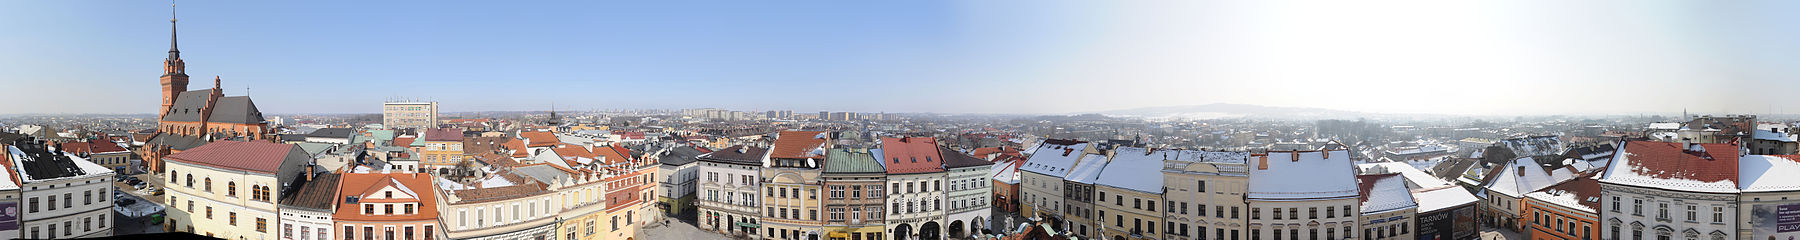 Tarnow City Hall Tower view.jpg